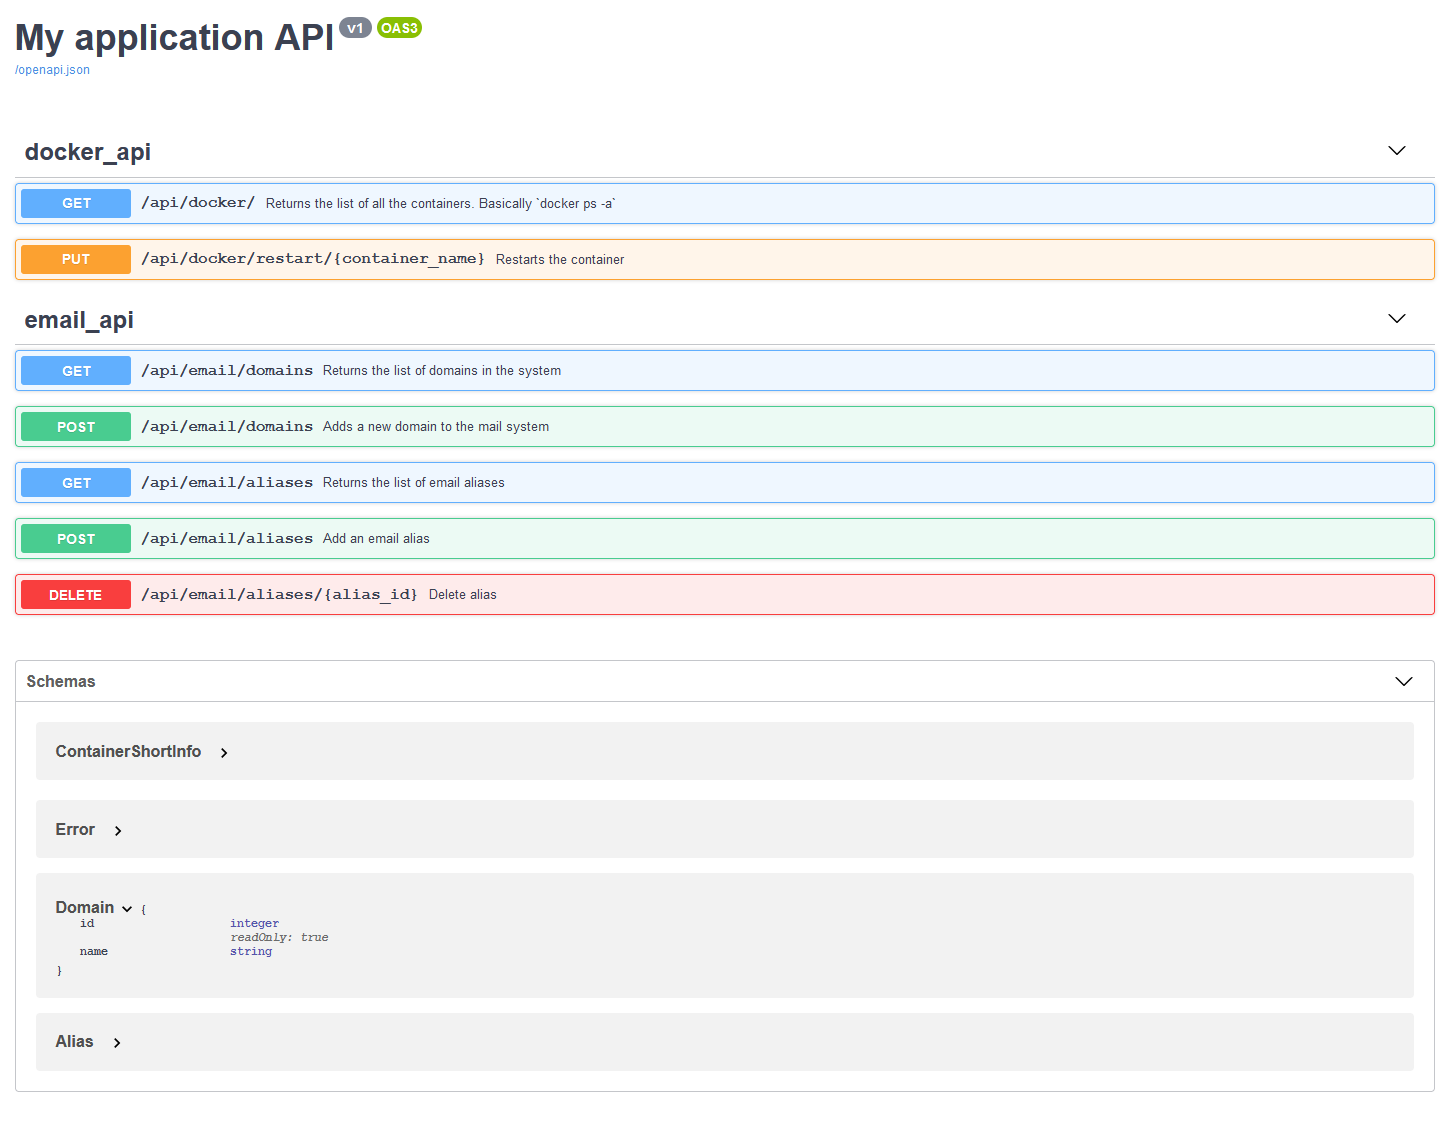 This image shows the open api / swagger user interface for the application. It contains a list of available routes, HTTP methods, description and allows you to call them from the front end.